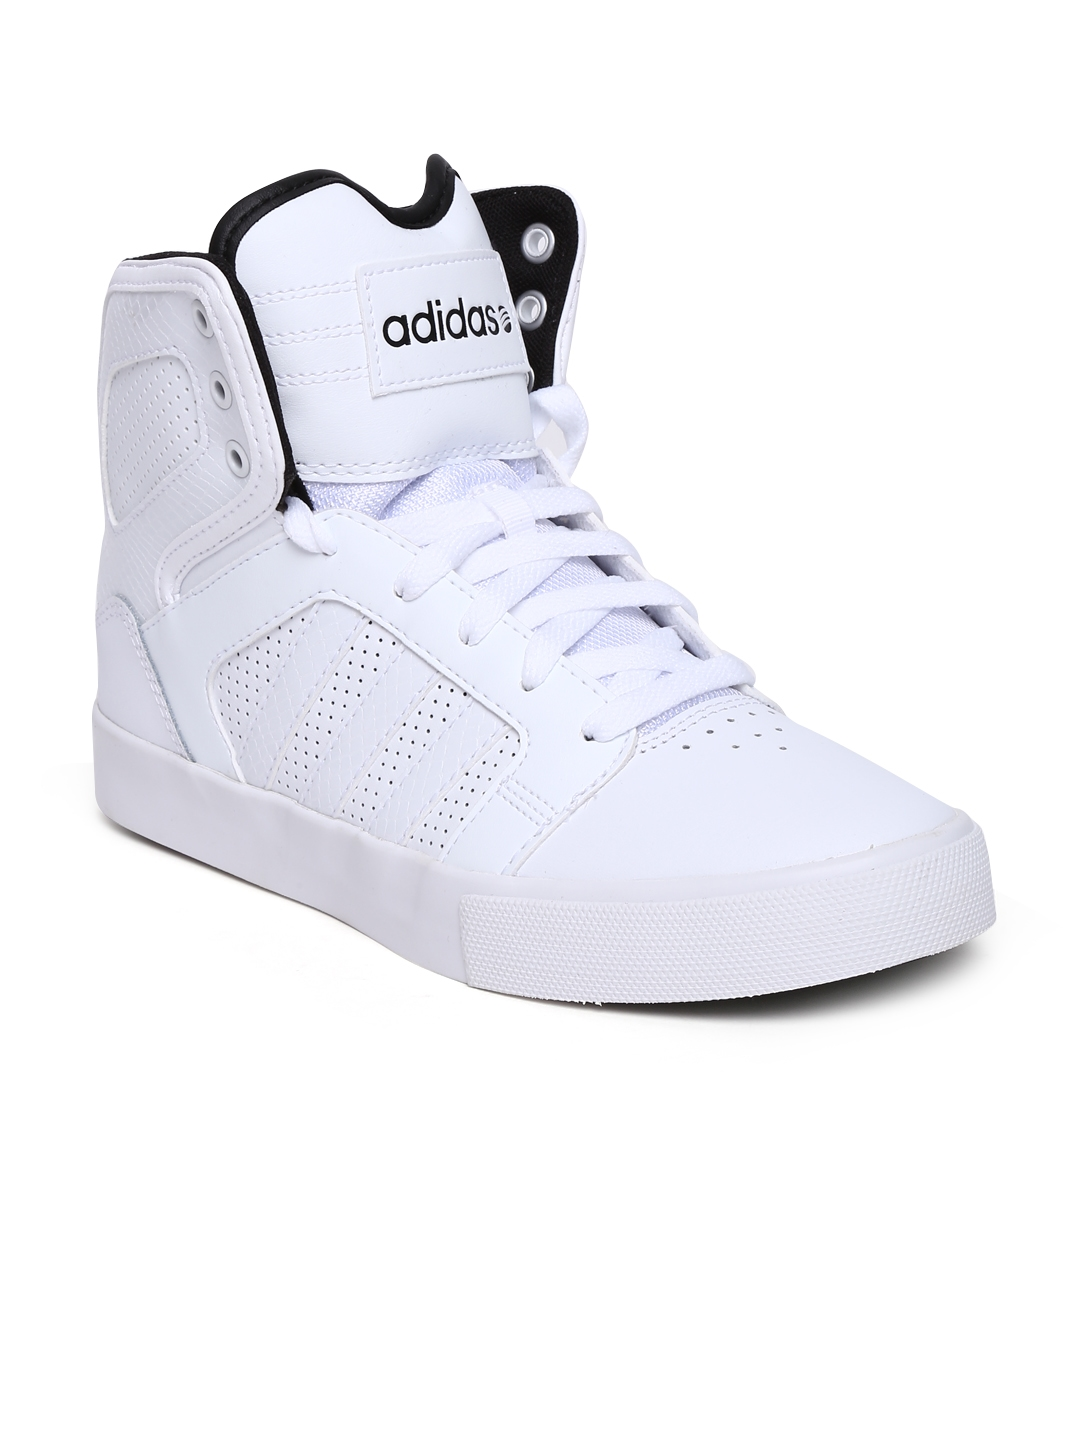 Leather Neo Adidas Mid White Men Casual Shoes Hitop Buy Y6nq7p7 c193d29fb